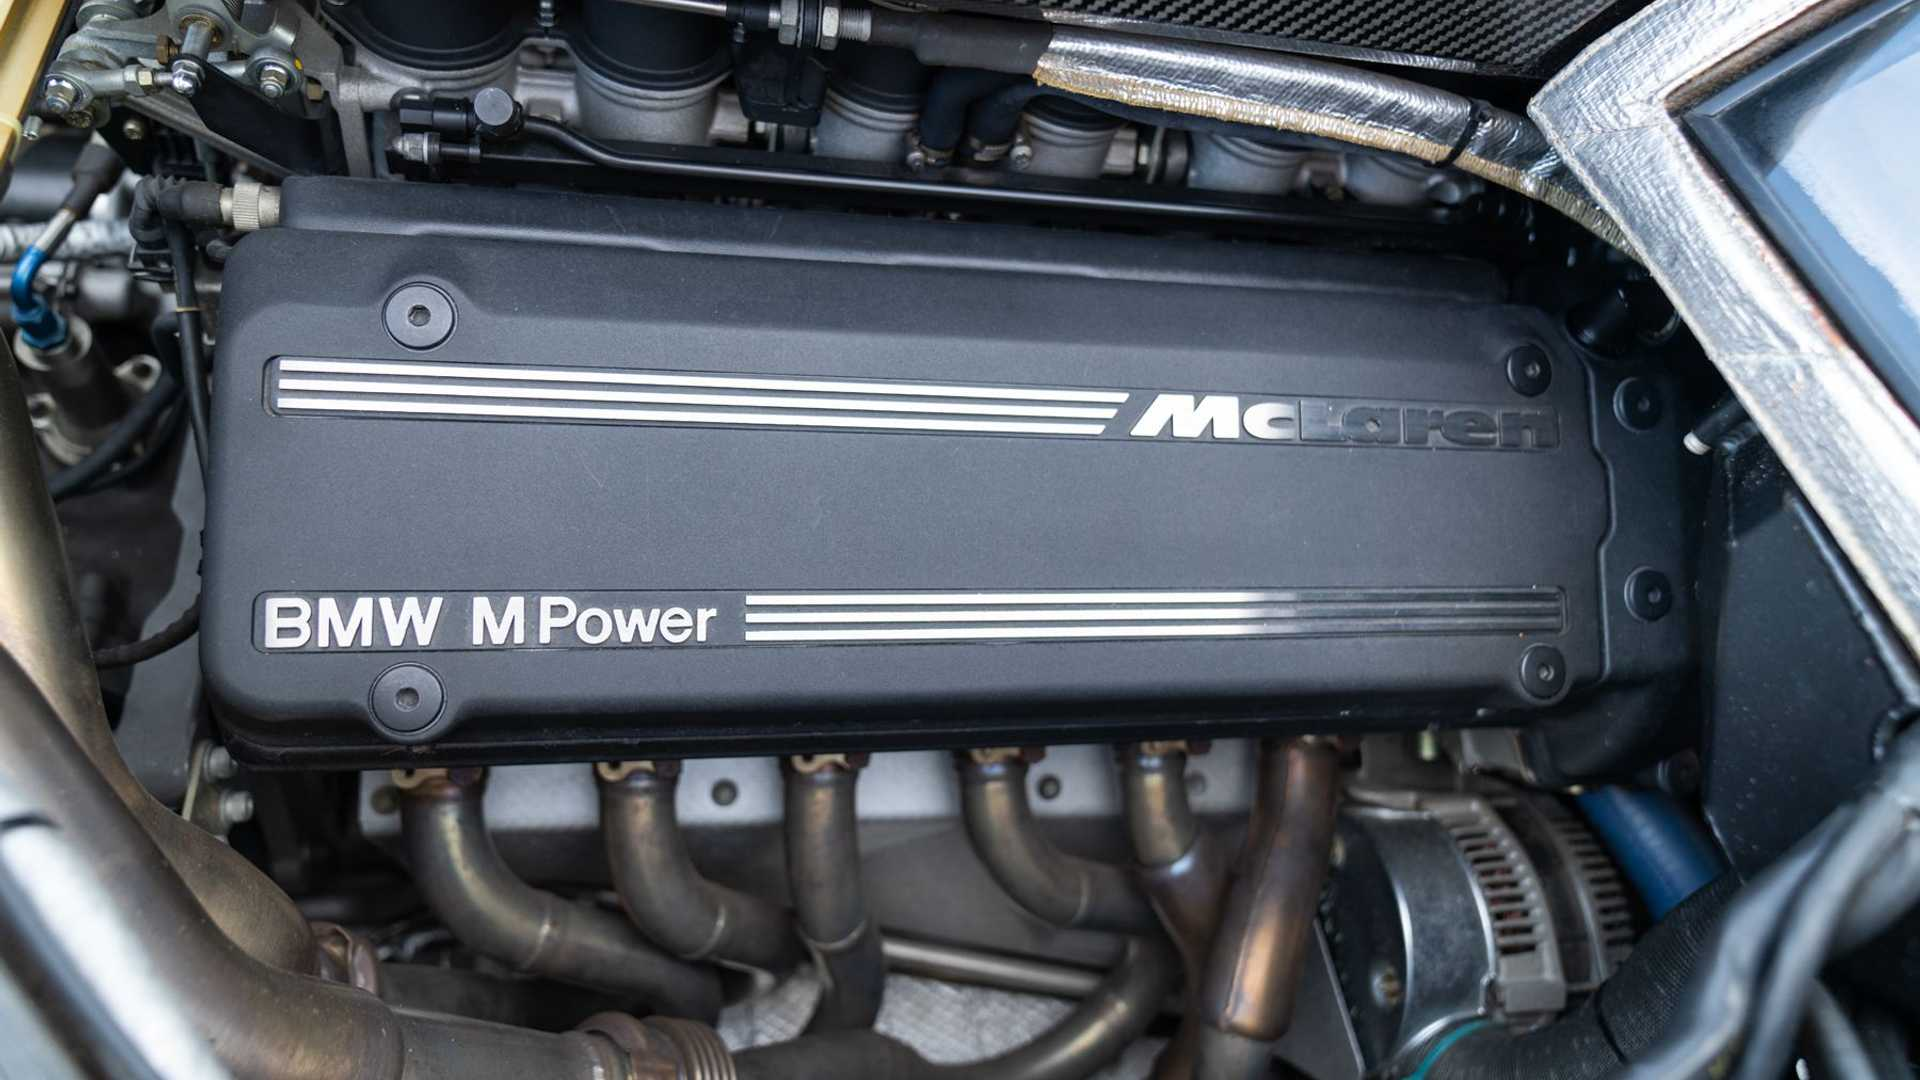 1995 McLaren F1 Gooding And Company Auction 2020 Engine